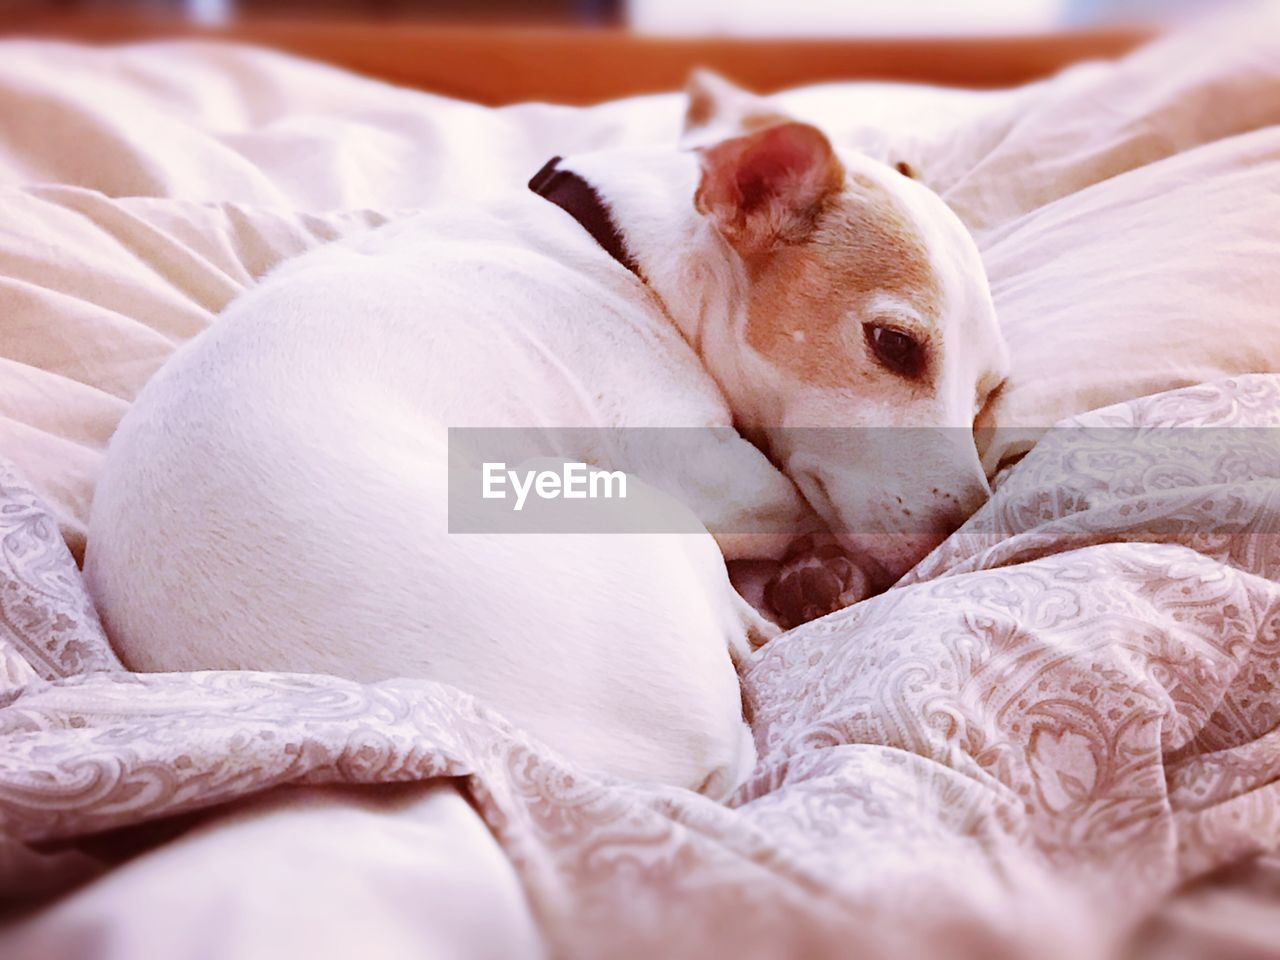 CLOSE-UP OF DOG IN BED